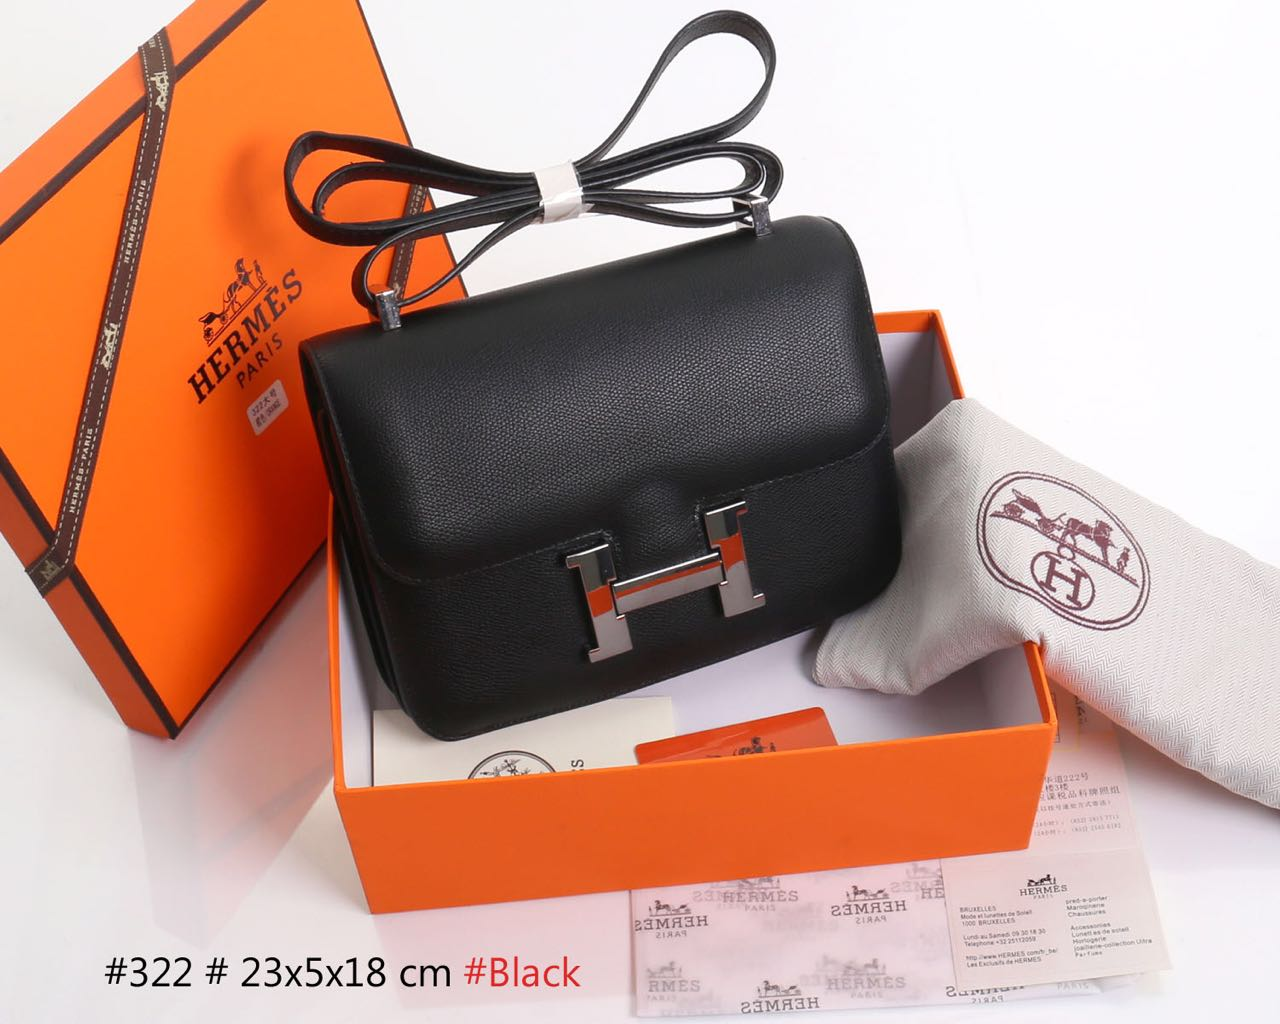 Clutch Hermes Constance Small SHW HITAM Semprem Box Terlaris 322. Model  Clutch Online · Model Tas Batam ... 3d3ce3c45a